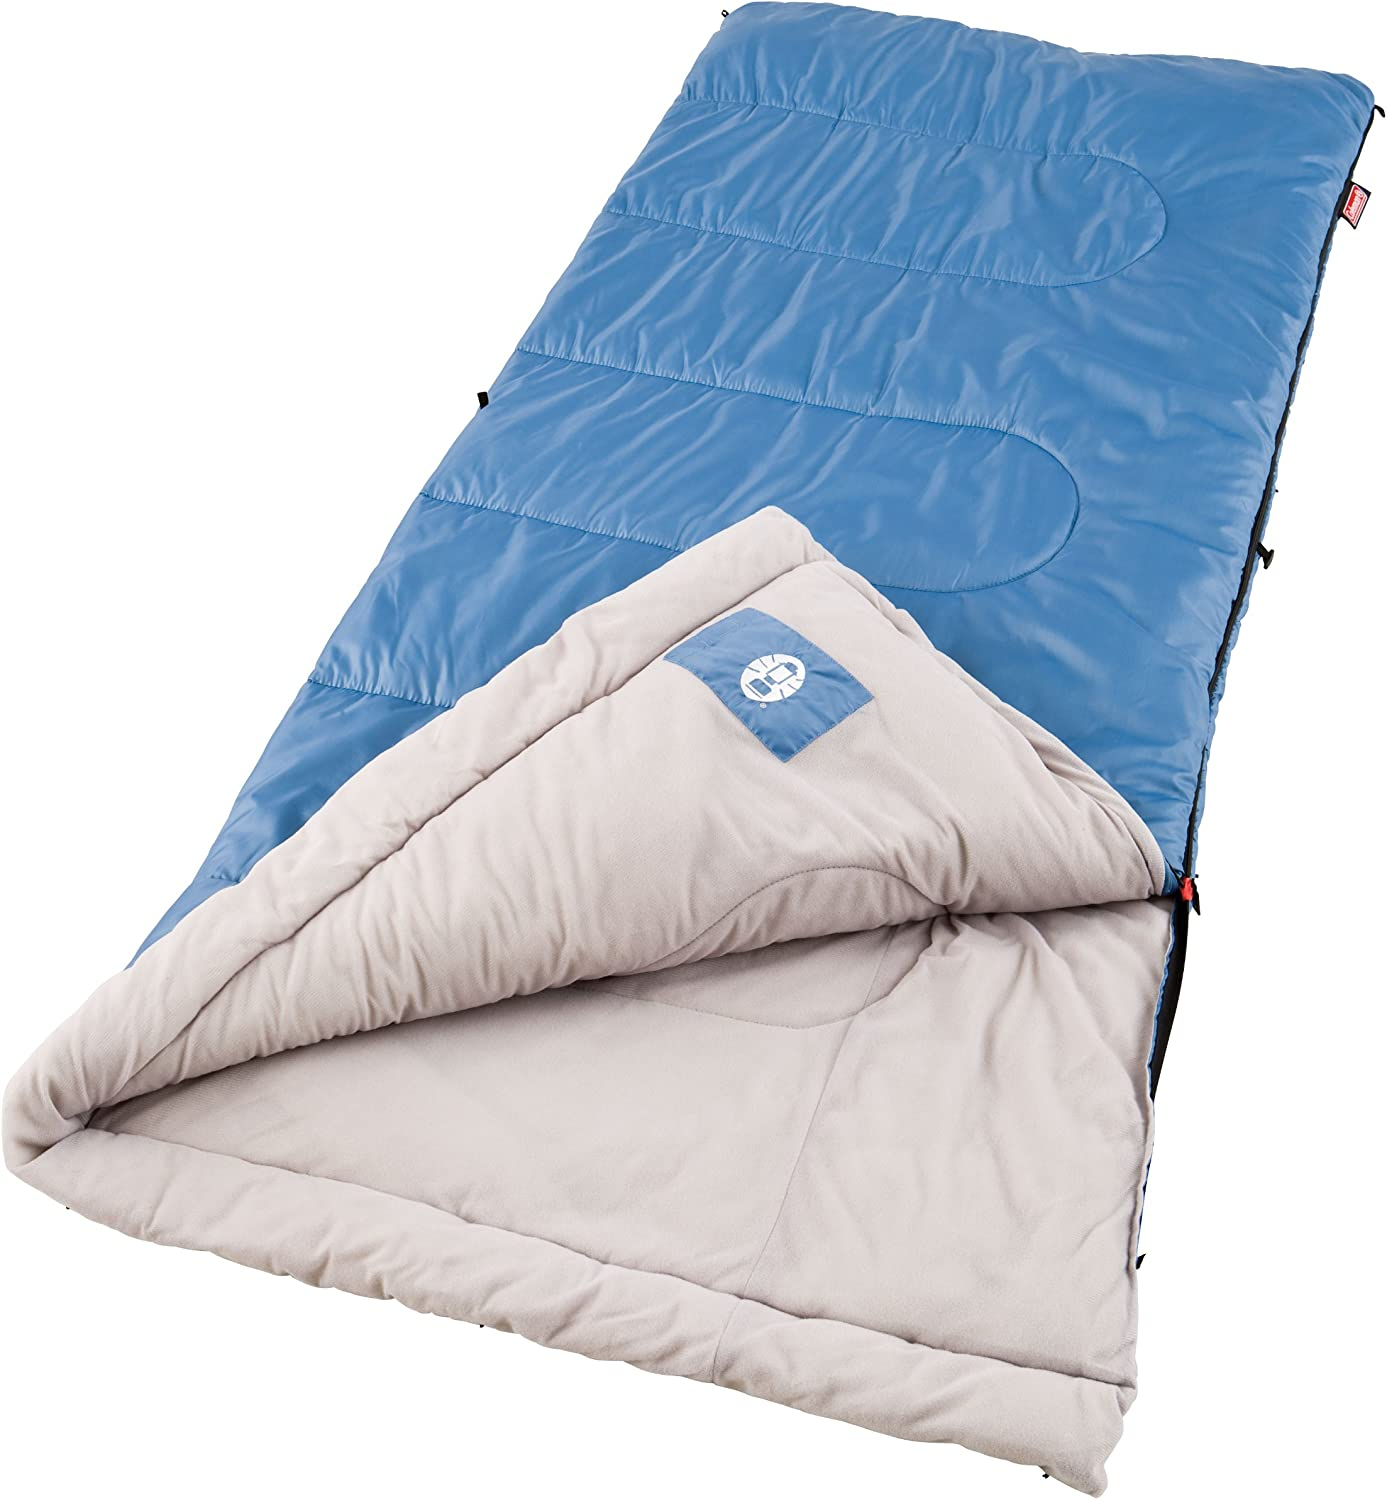 What Is The Best Sleeping Bags For Summer On The Market Today